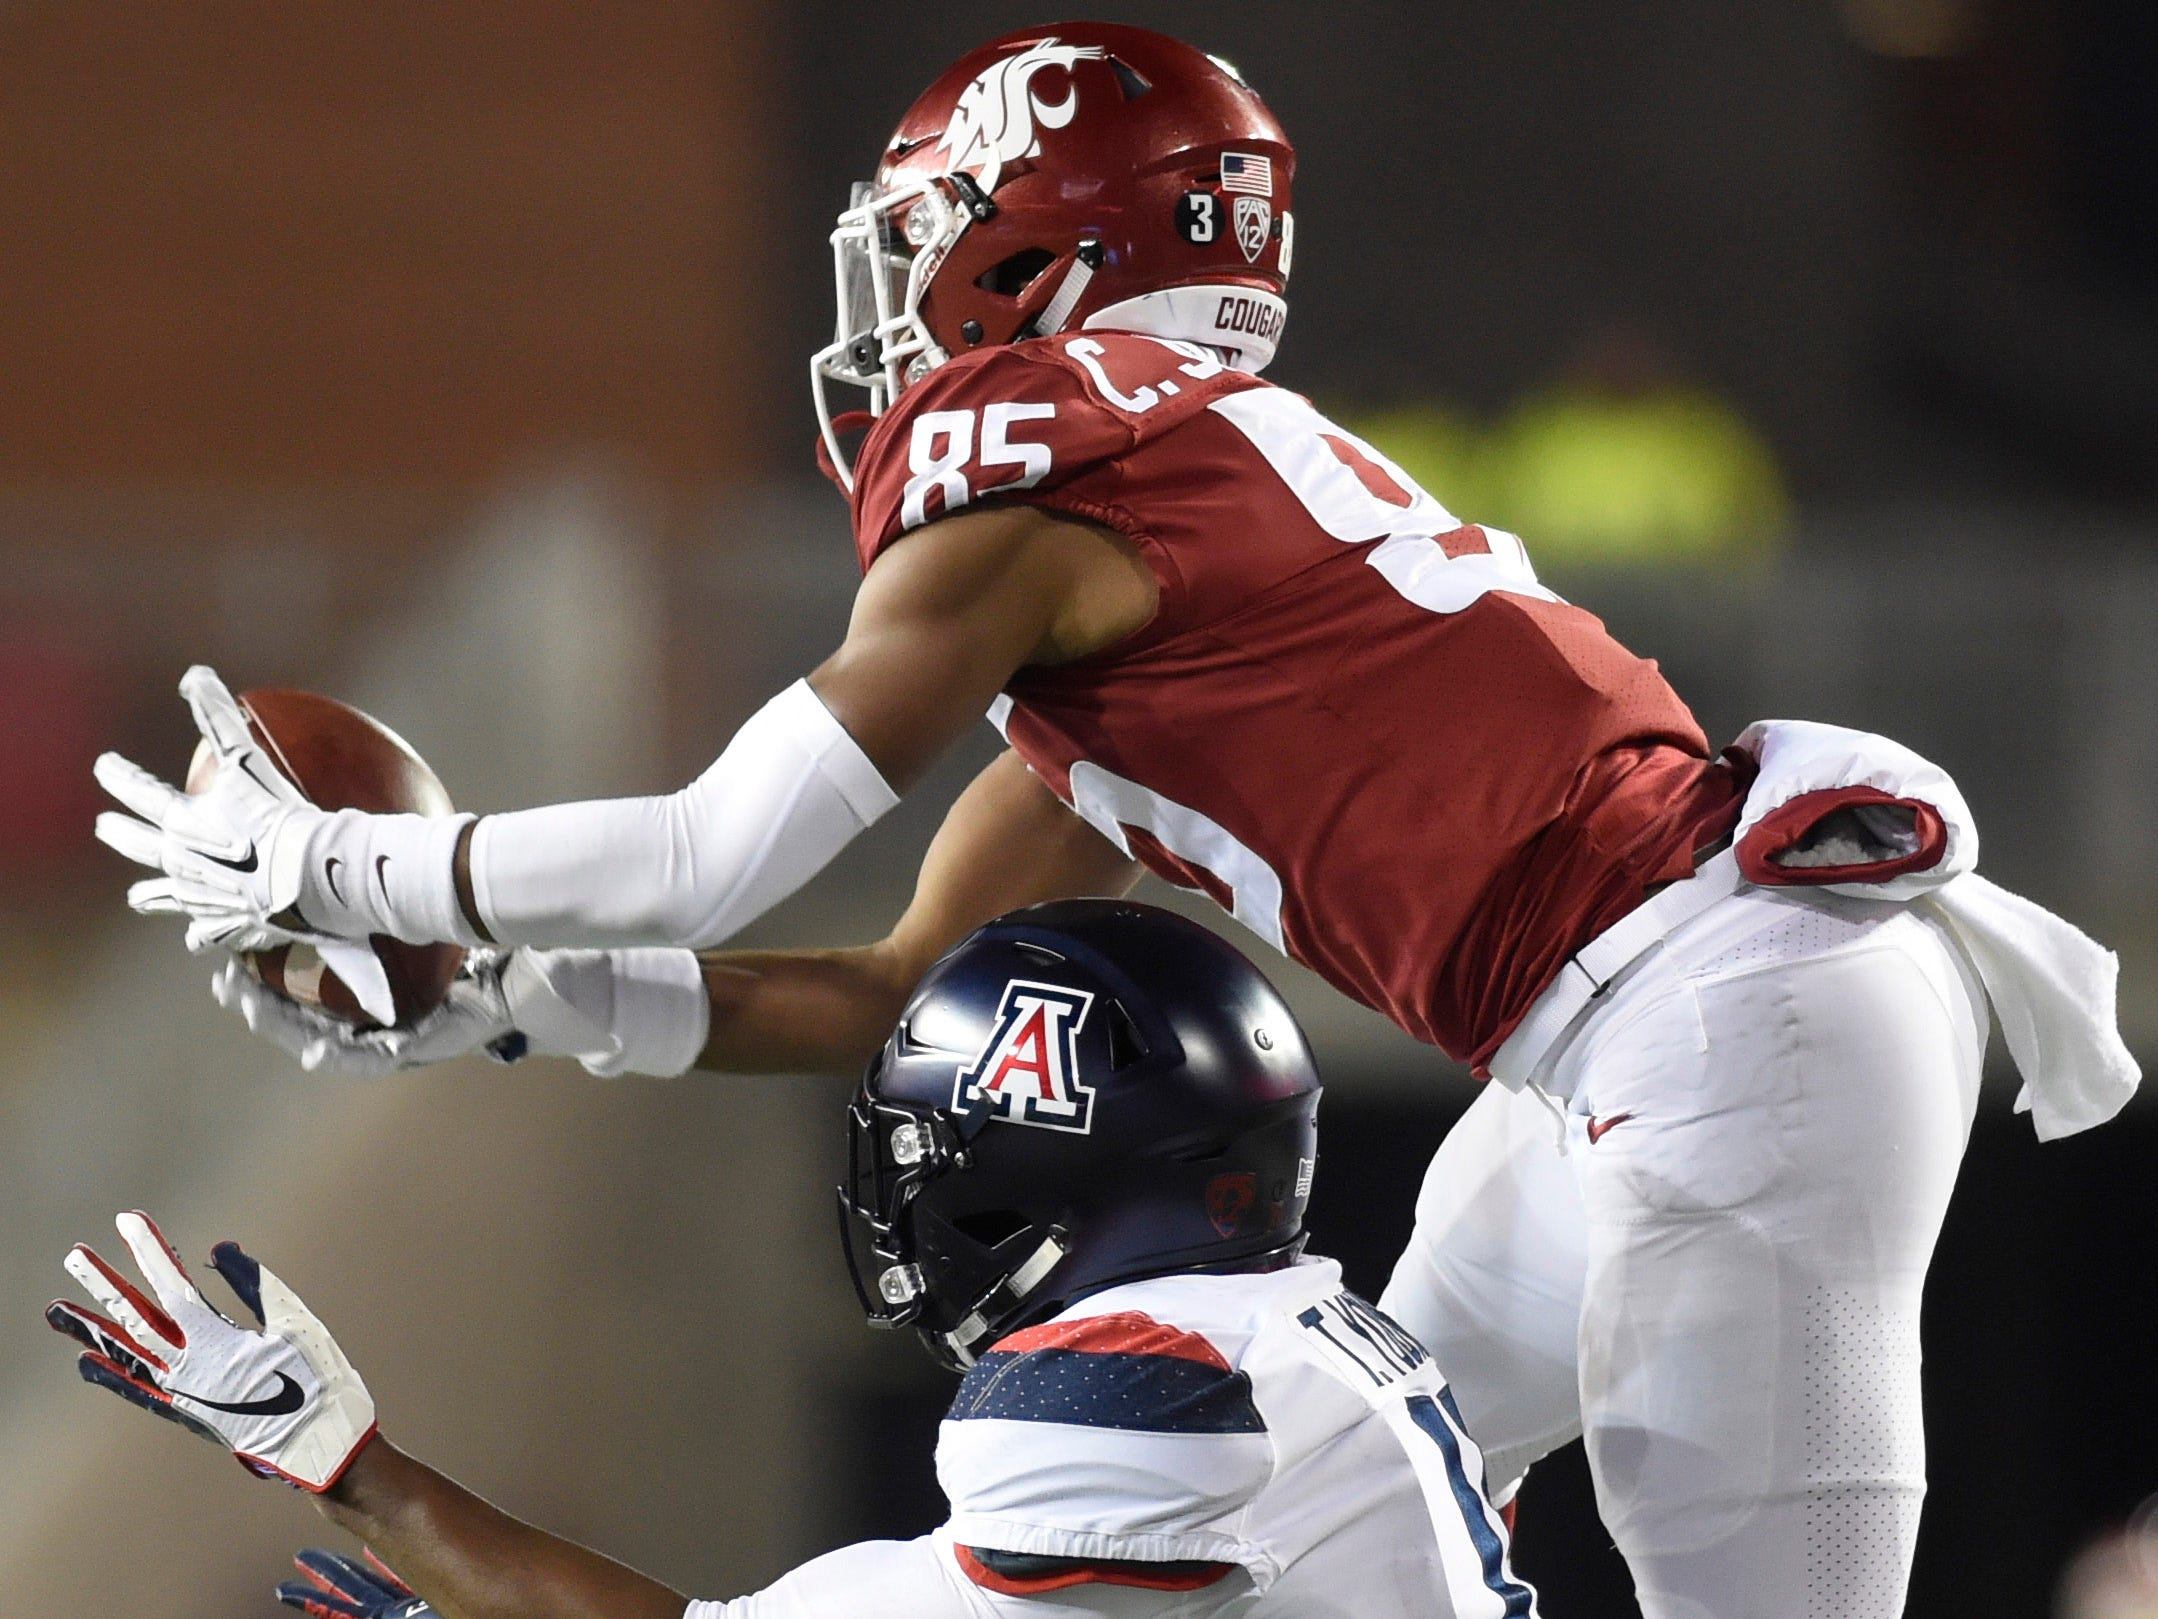 Nov 17, 2018; Pullman, WA, USA; Washington State Cougars wide receiver Calvin Jackson Jr. (85) goes up over Arizona Wildcats safety Troy Young (11) to catch the football for a first down in the second half at Martin Stadium. Mandatory Credit: James Snook-USA TODAY Sports